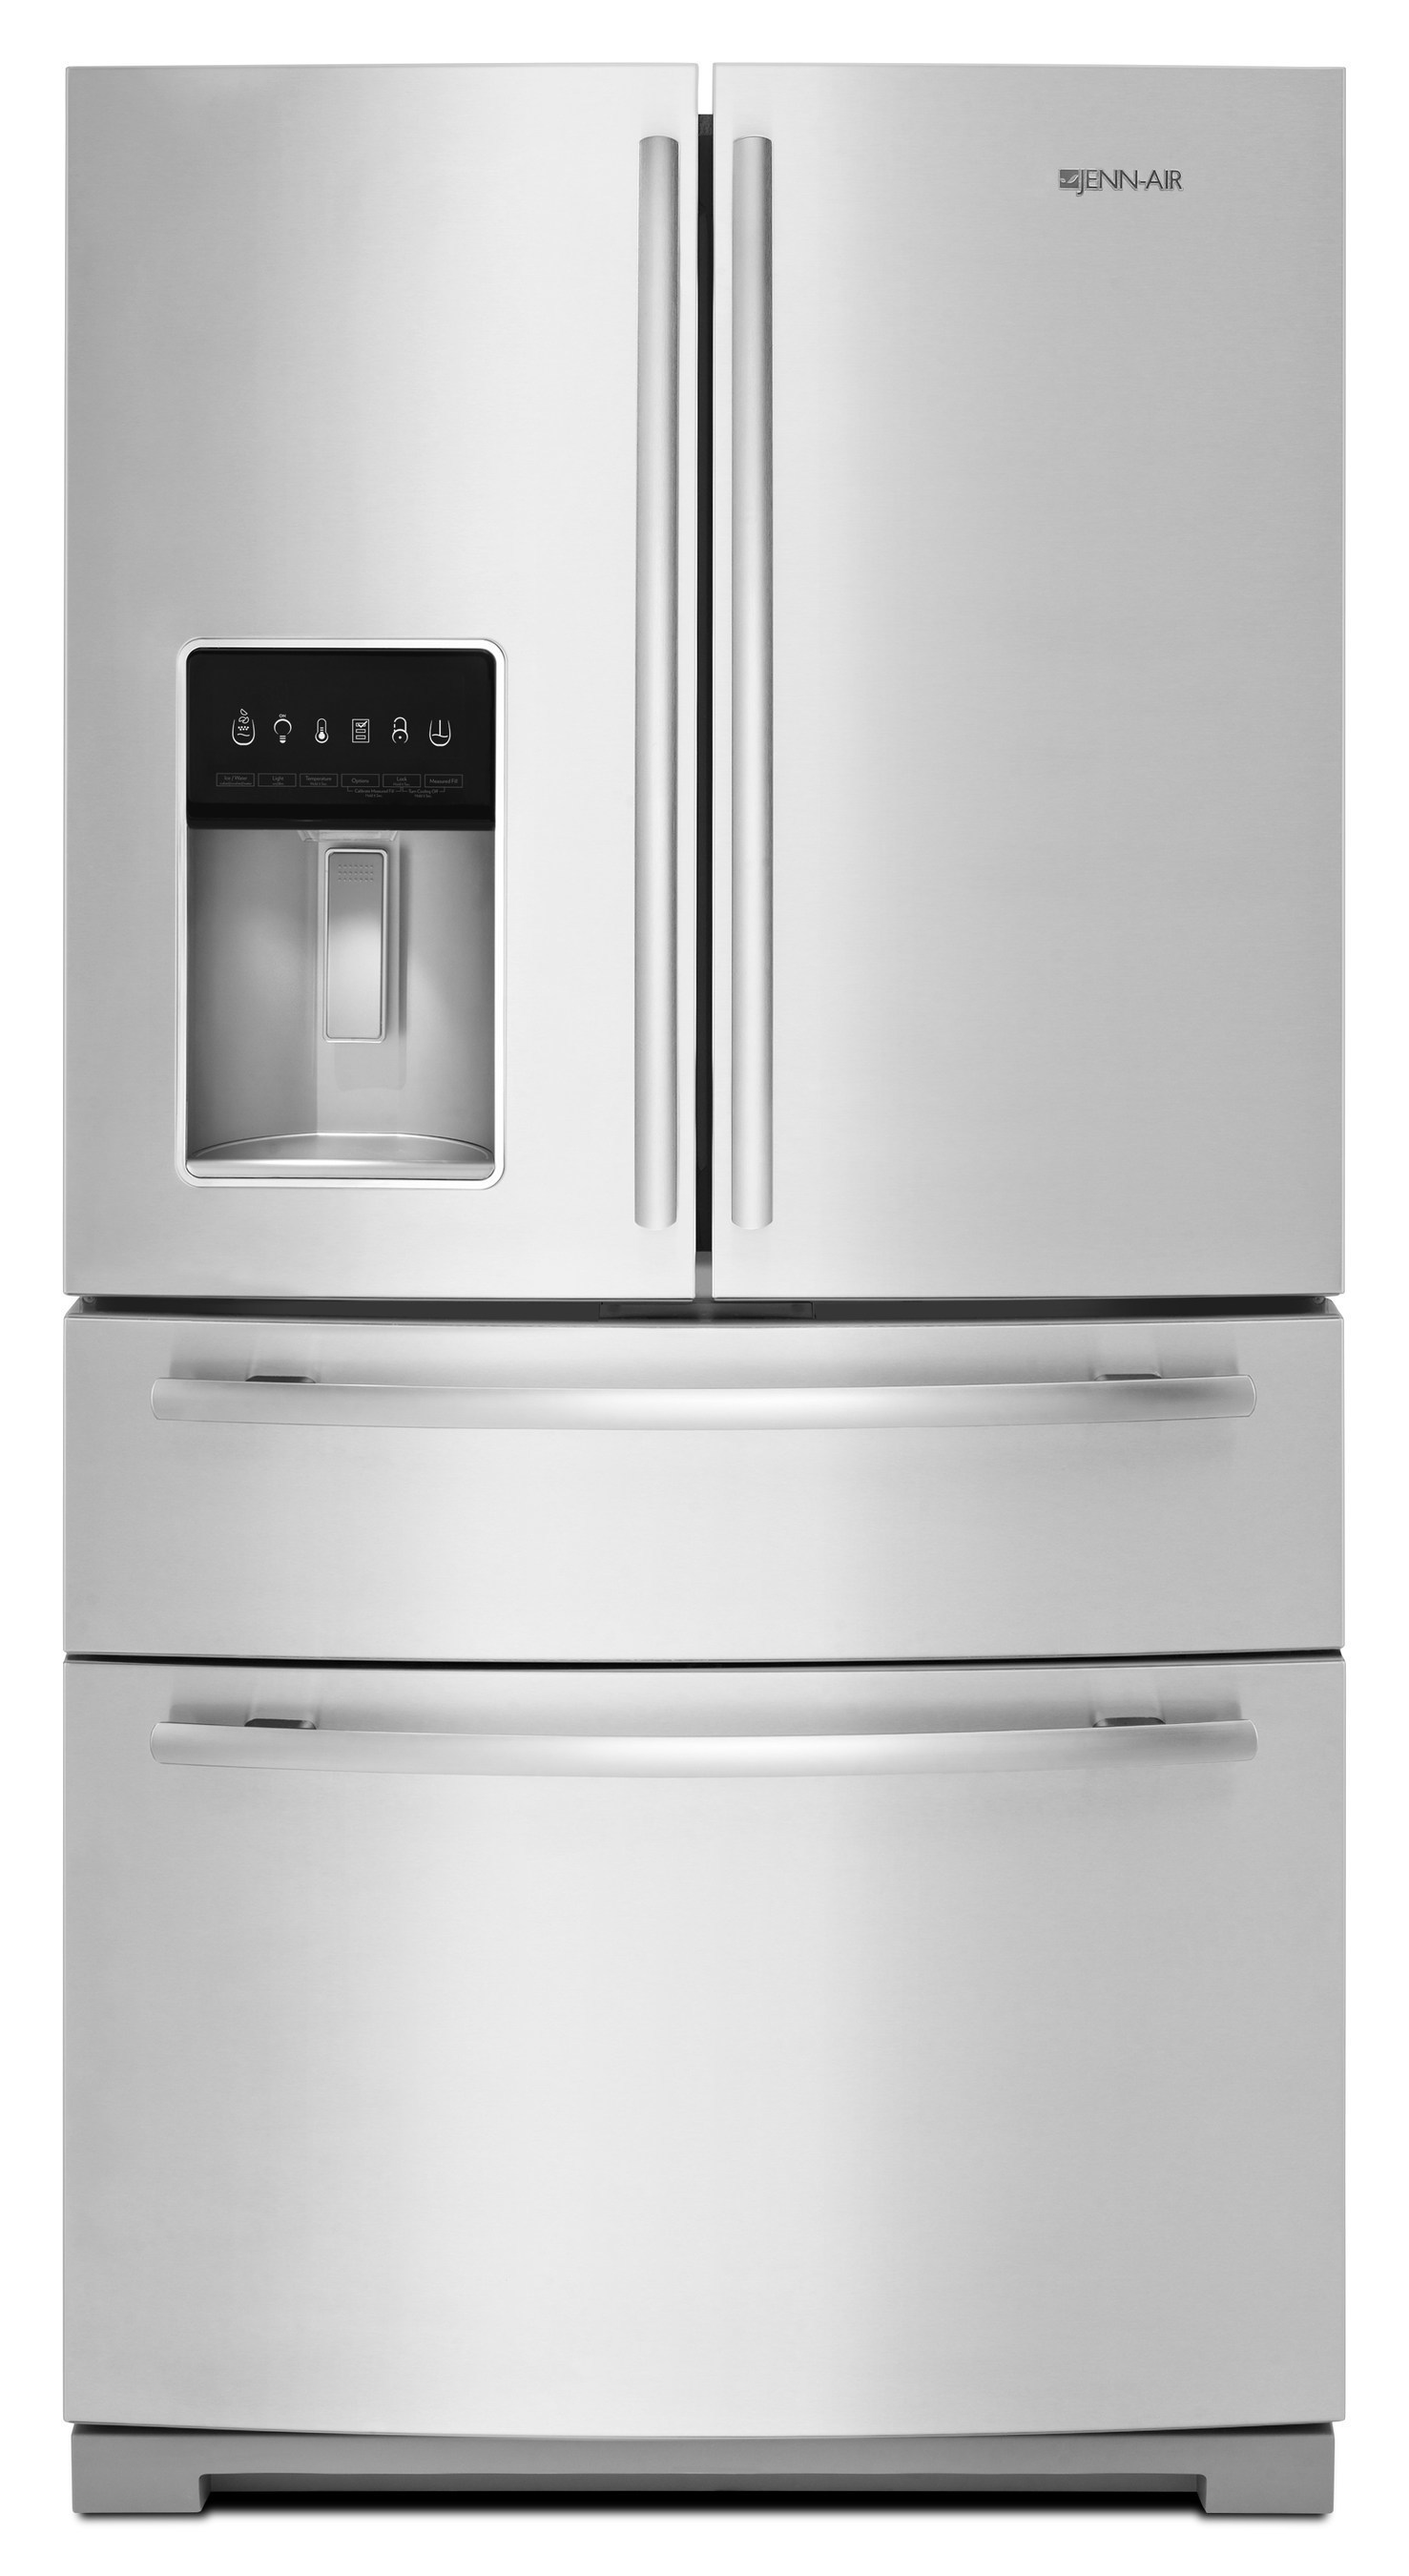 """Luxury appliance maker Jenn-Air has enhanced its 69"""" standard-depth French door refrigerator options with a new model option featuring a dedicated exterior drawer for customizing food and ingredient storage."""